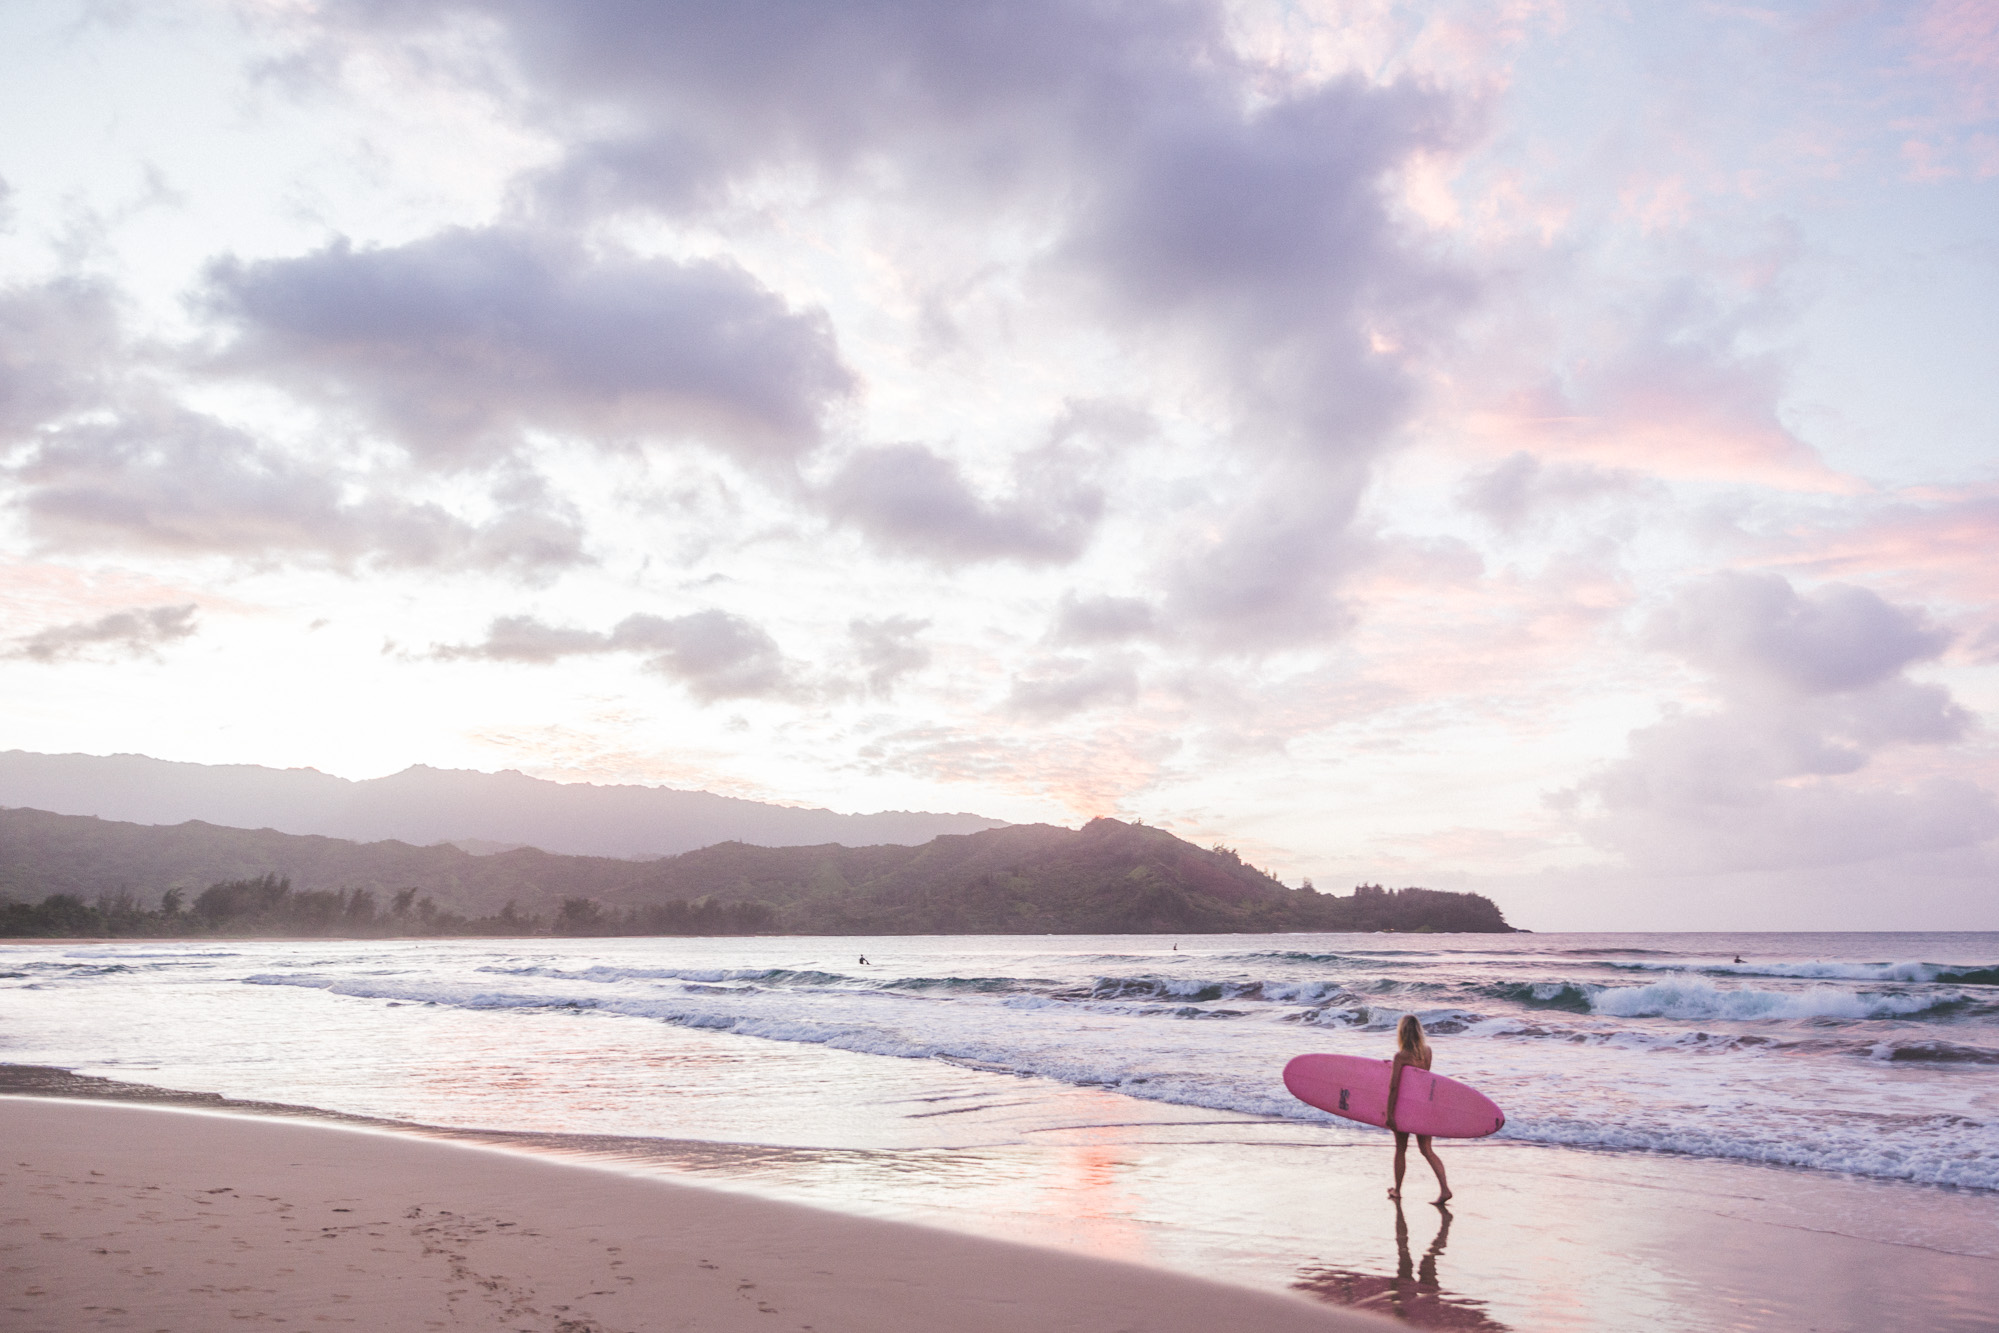 Surfing at Sunset Hanalei Bay Beach Hawaii Kauai Travel Guide via Find Us Lost